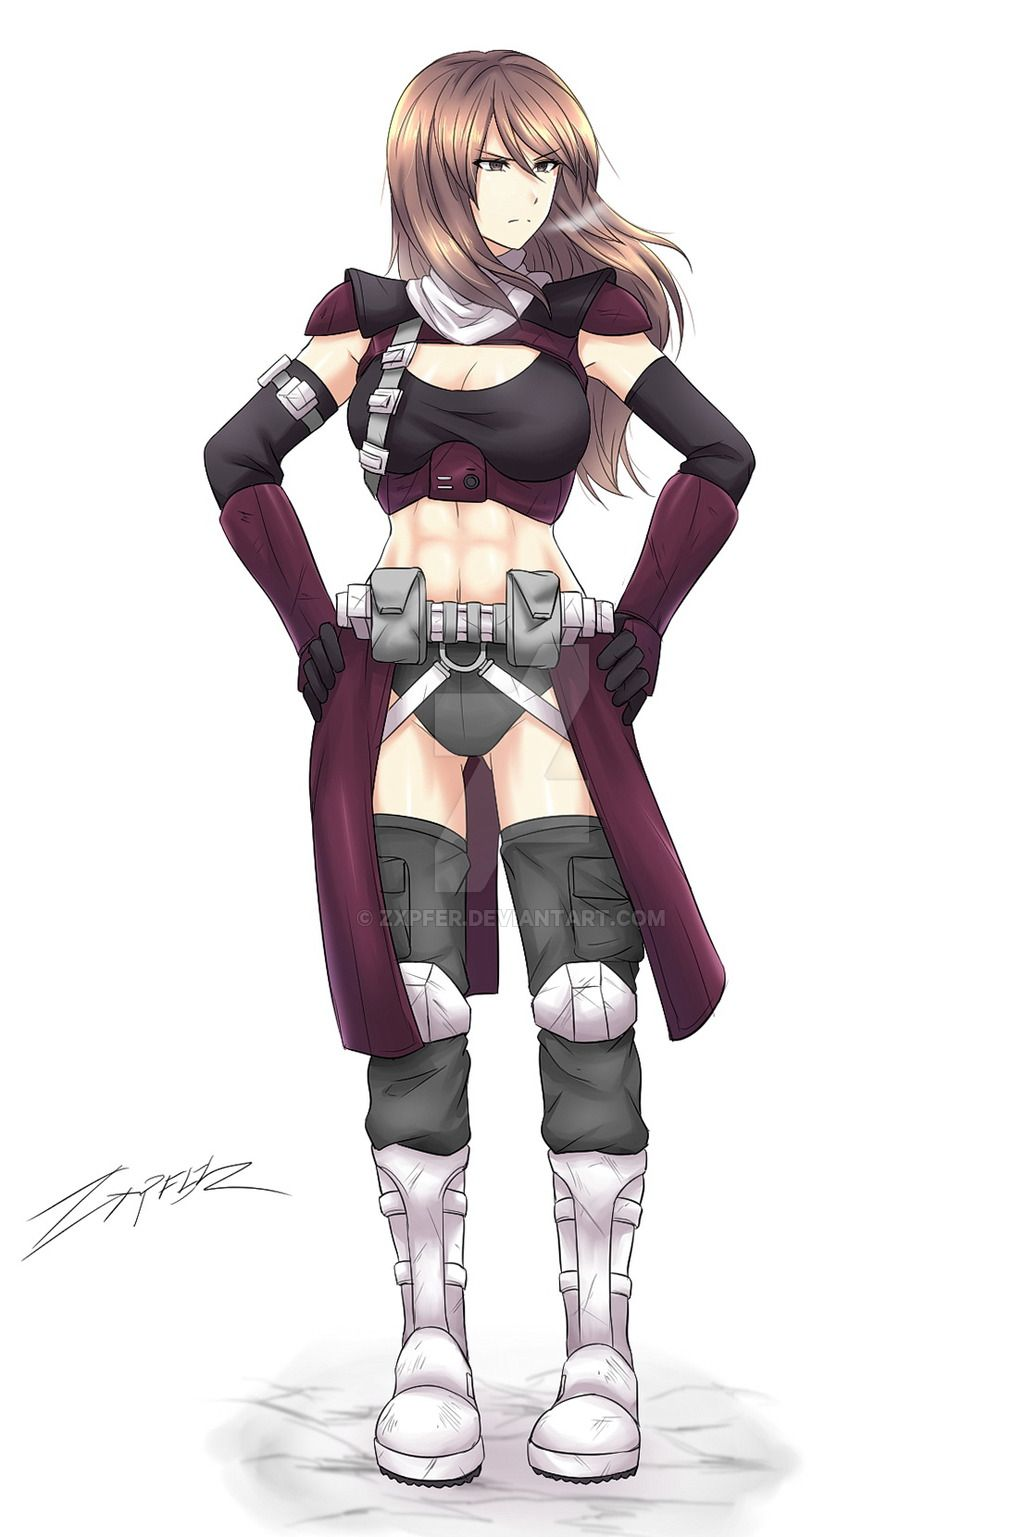 Image Result For Female Clone Trooper Star Wars Zeichnungen Star Wars Madchen Star Wars Klone